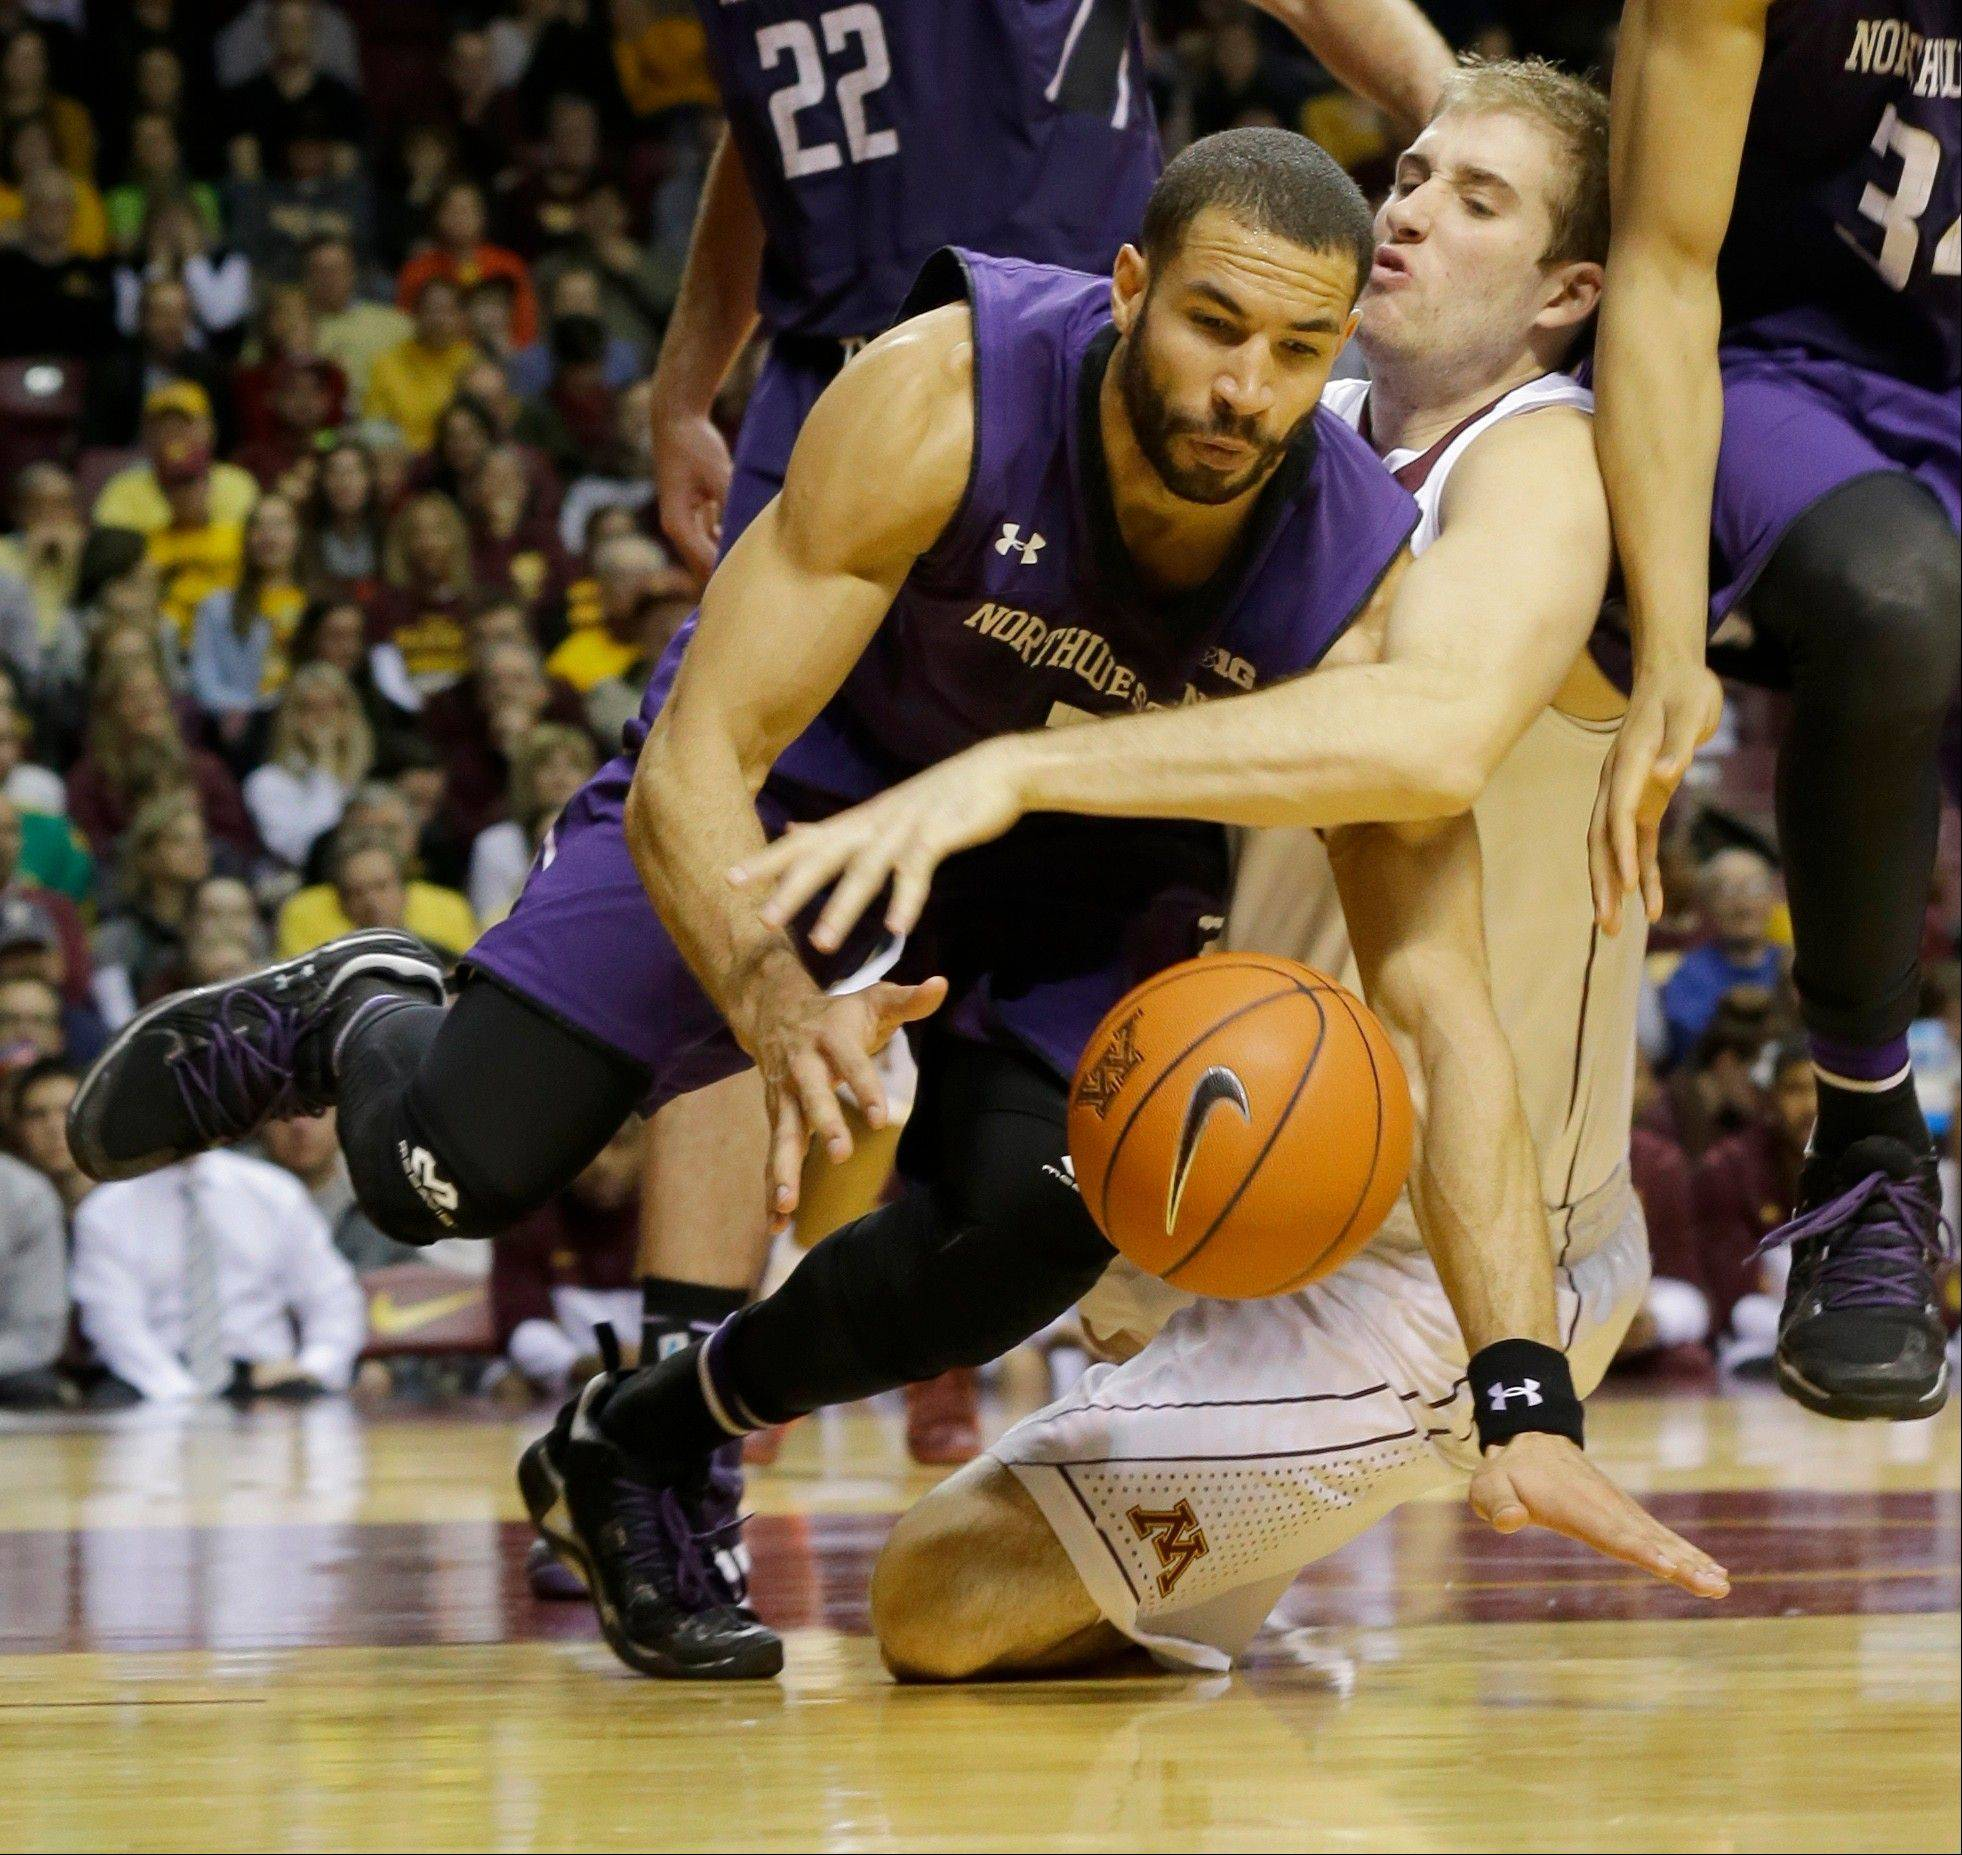 Northwestern guard Drew Crawford, left, earned Player of the Week honors in the Big Ten for leading the Wildcats to impressive road wins over Wisconsin and Minnesota last week. Crawford, a Naperville Central grad, had 30 points against the Badgers and 17 points against Minnesota.